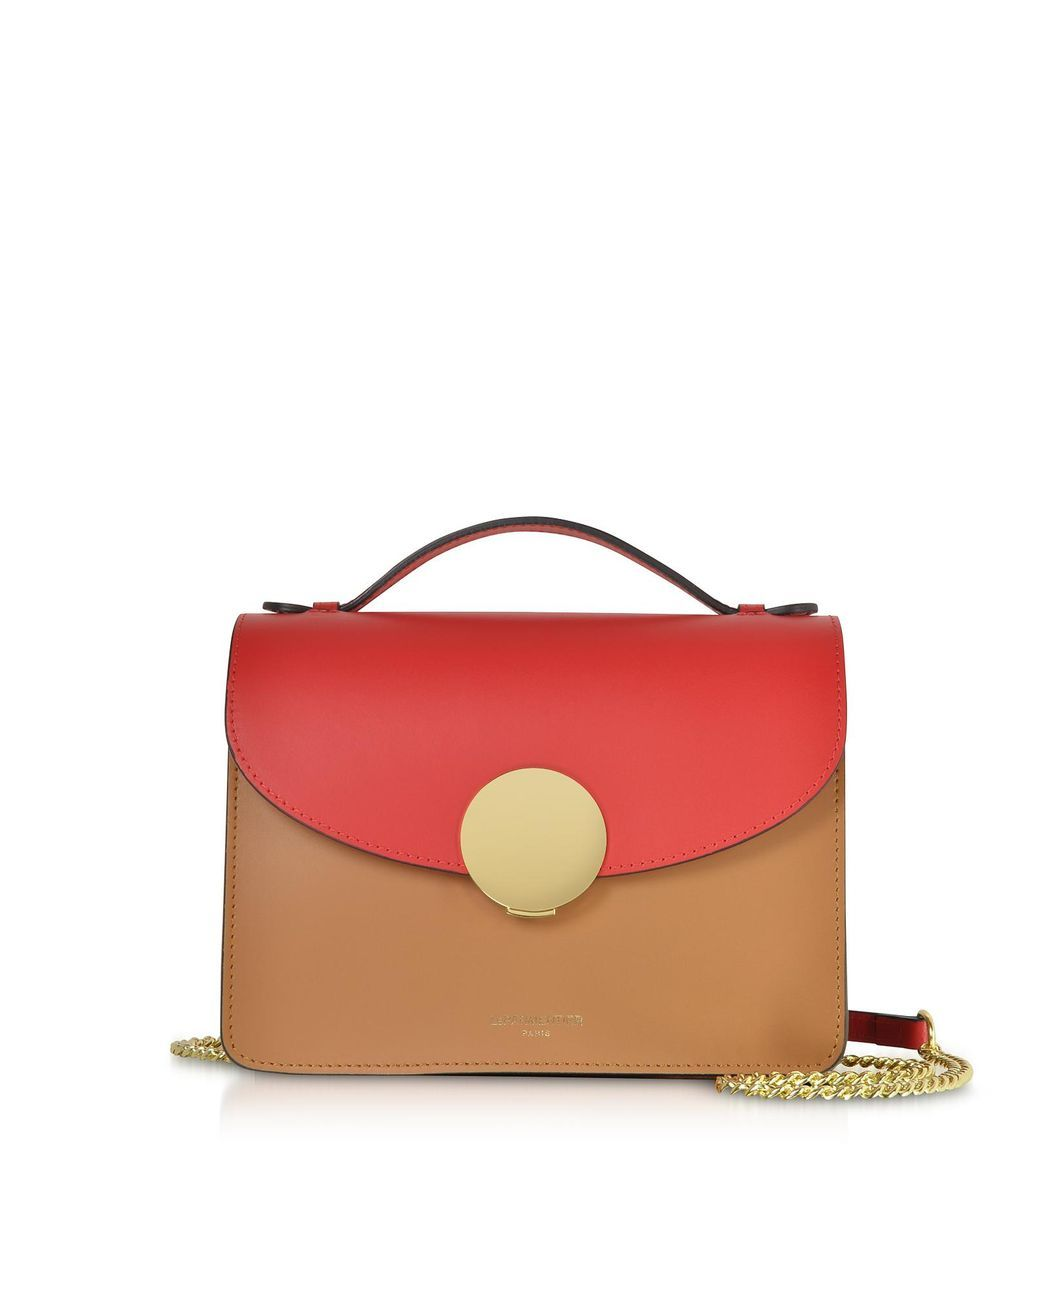 eecb3587f Le Parmentier - Red New Ondina Color Block Flap Top Leather Satchel Bag -  Lyst